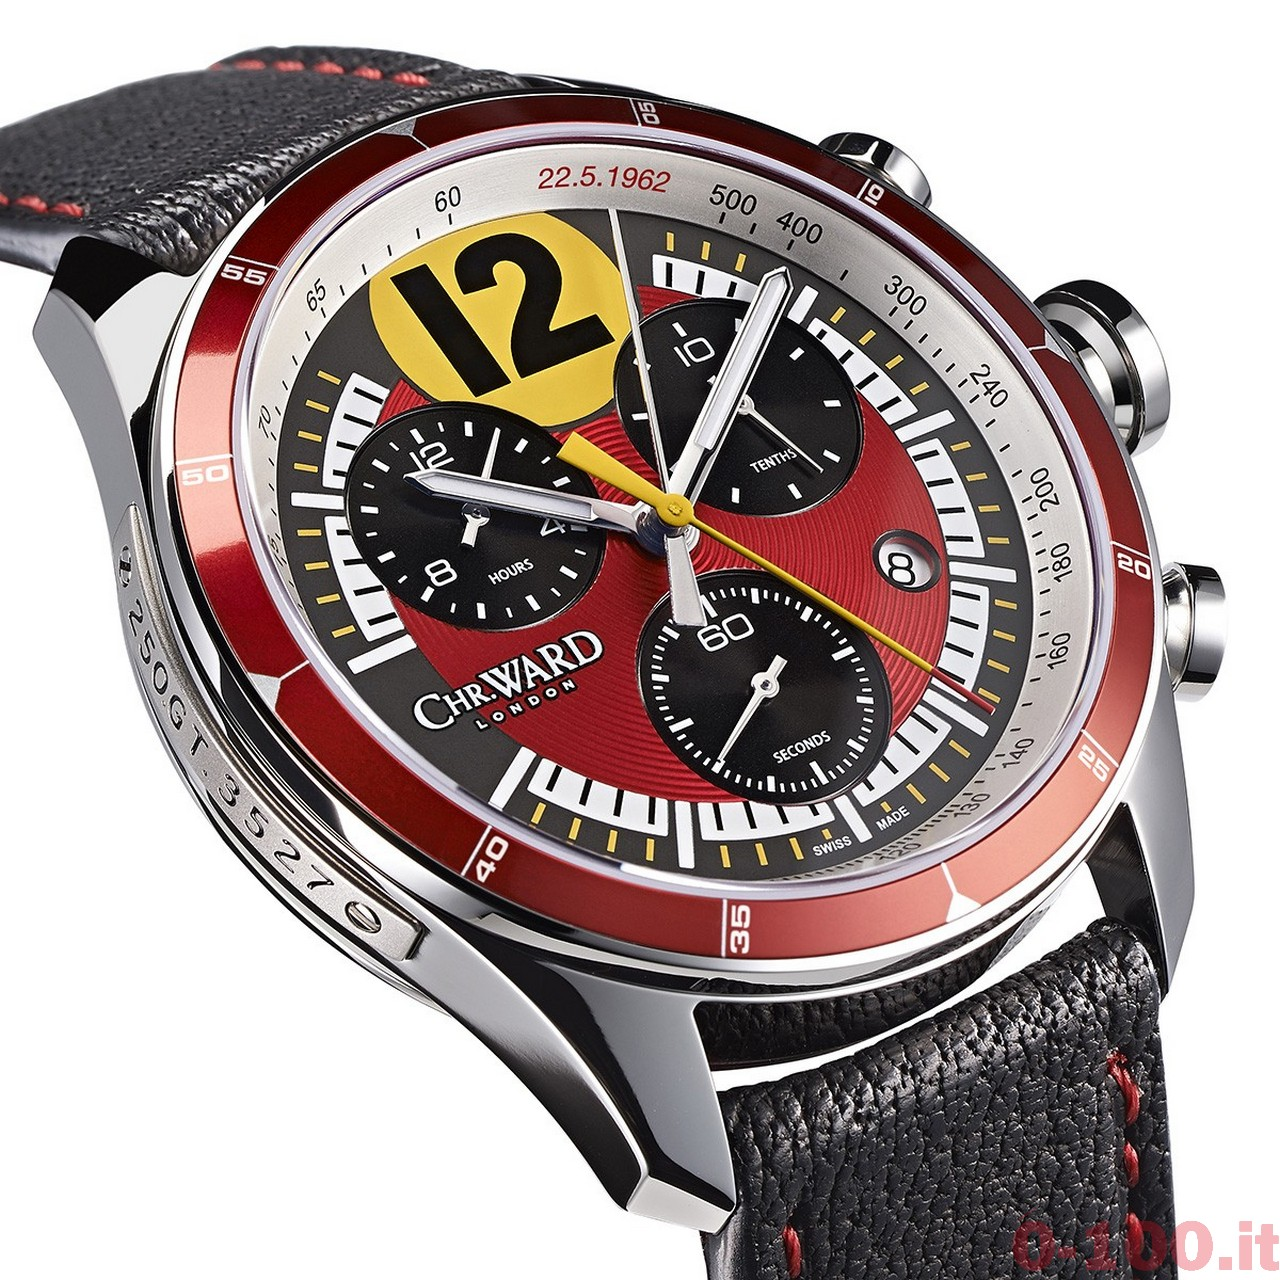 christopher-ward-tmb-art-metal-c70-3527gt-250-gto-chronometer-limited-edition_0-100_2